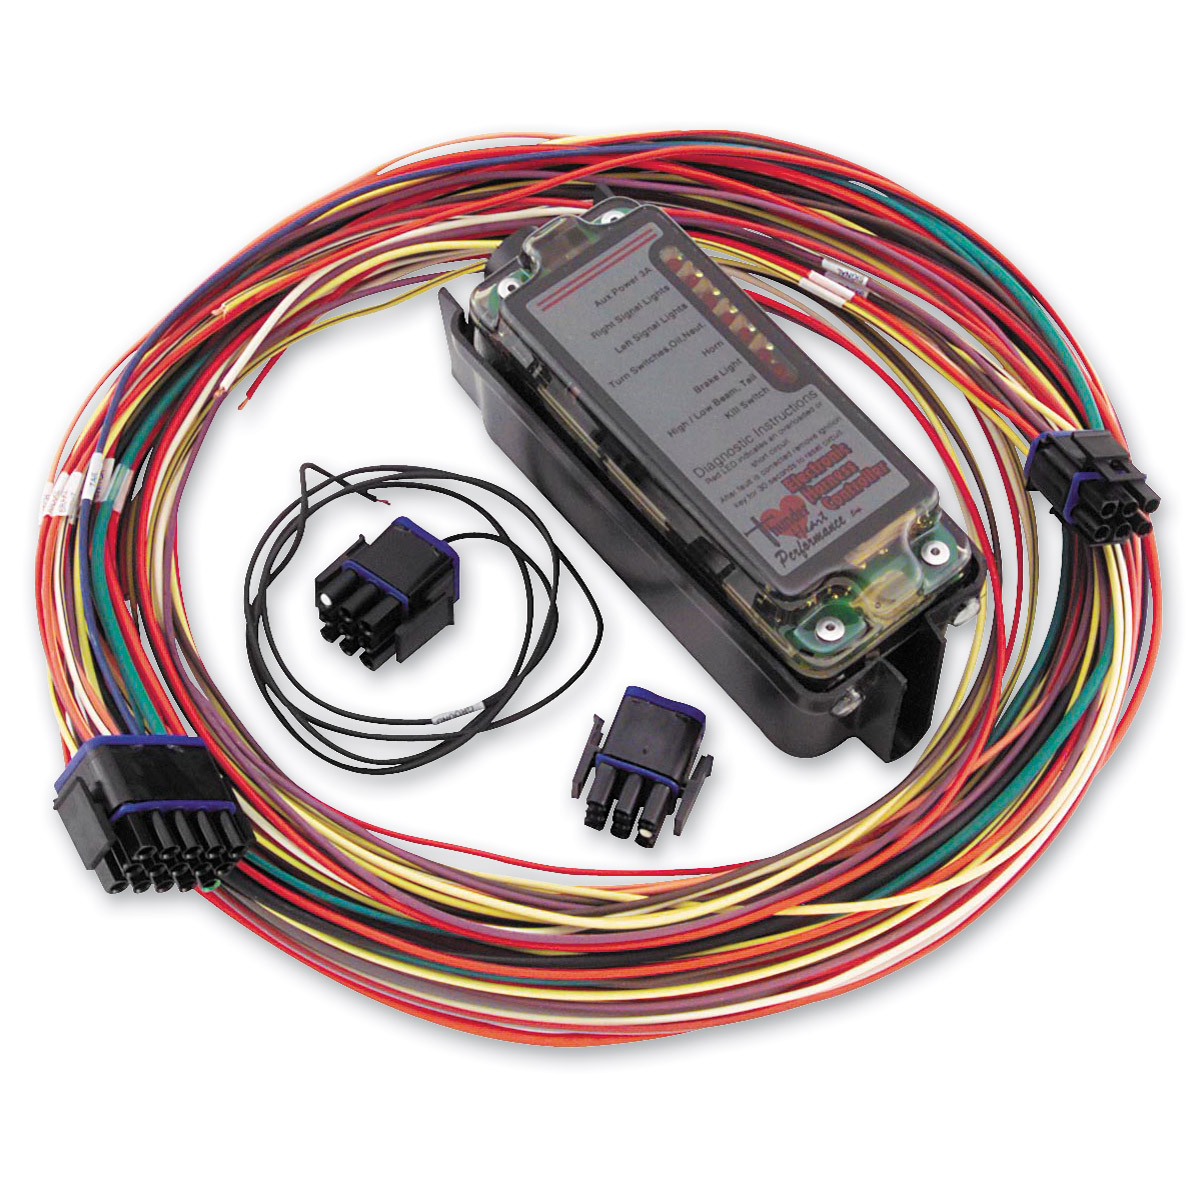 Wiring Harness Kit Diagram Data Adapter For Trailer Thunder Heart Performance Complete Electronic Controller